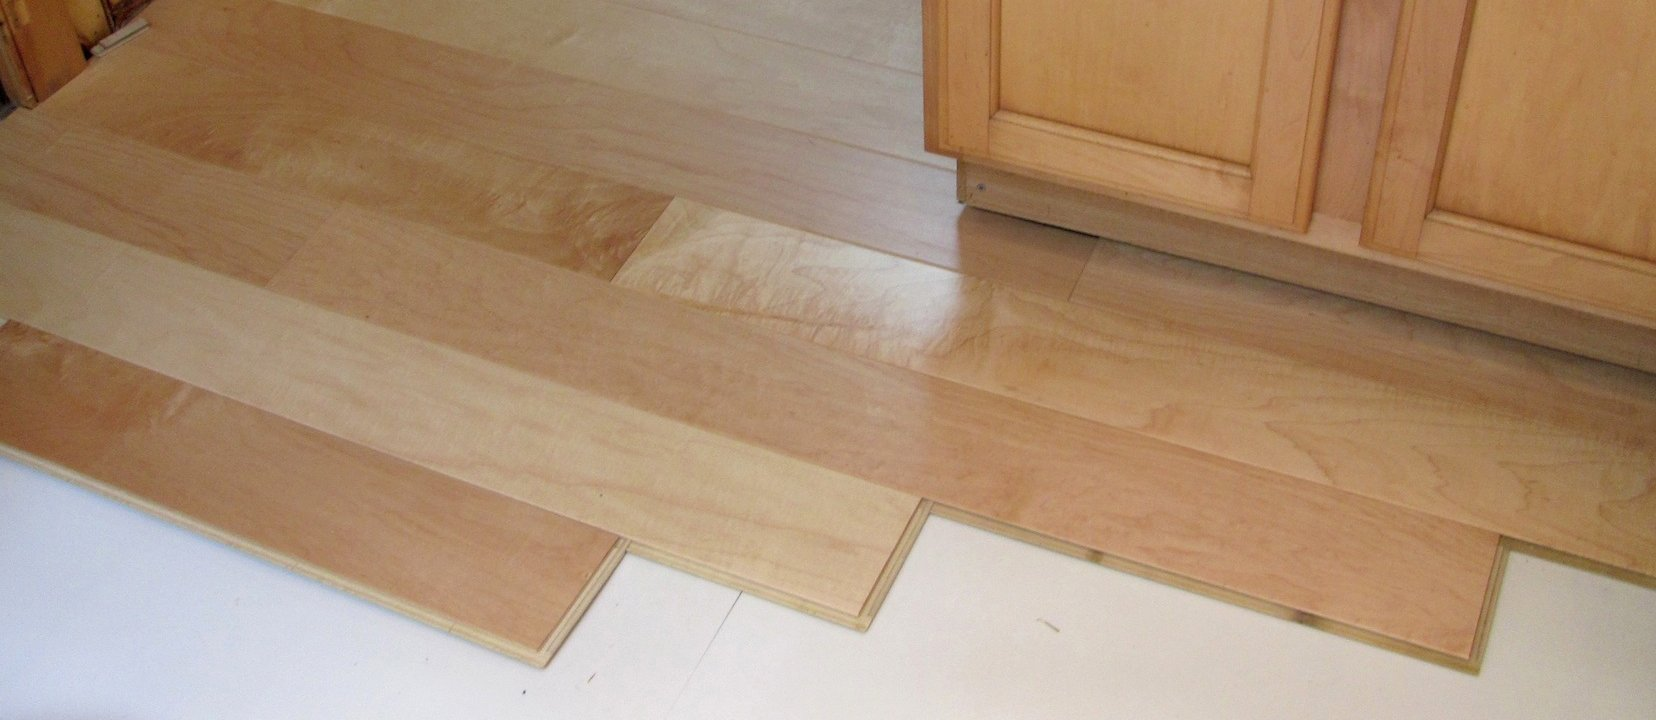 How to Lay a Laminate Floor 2